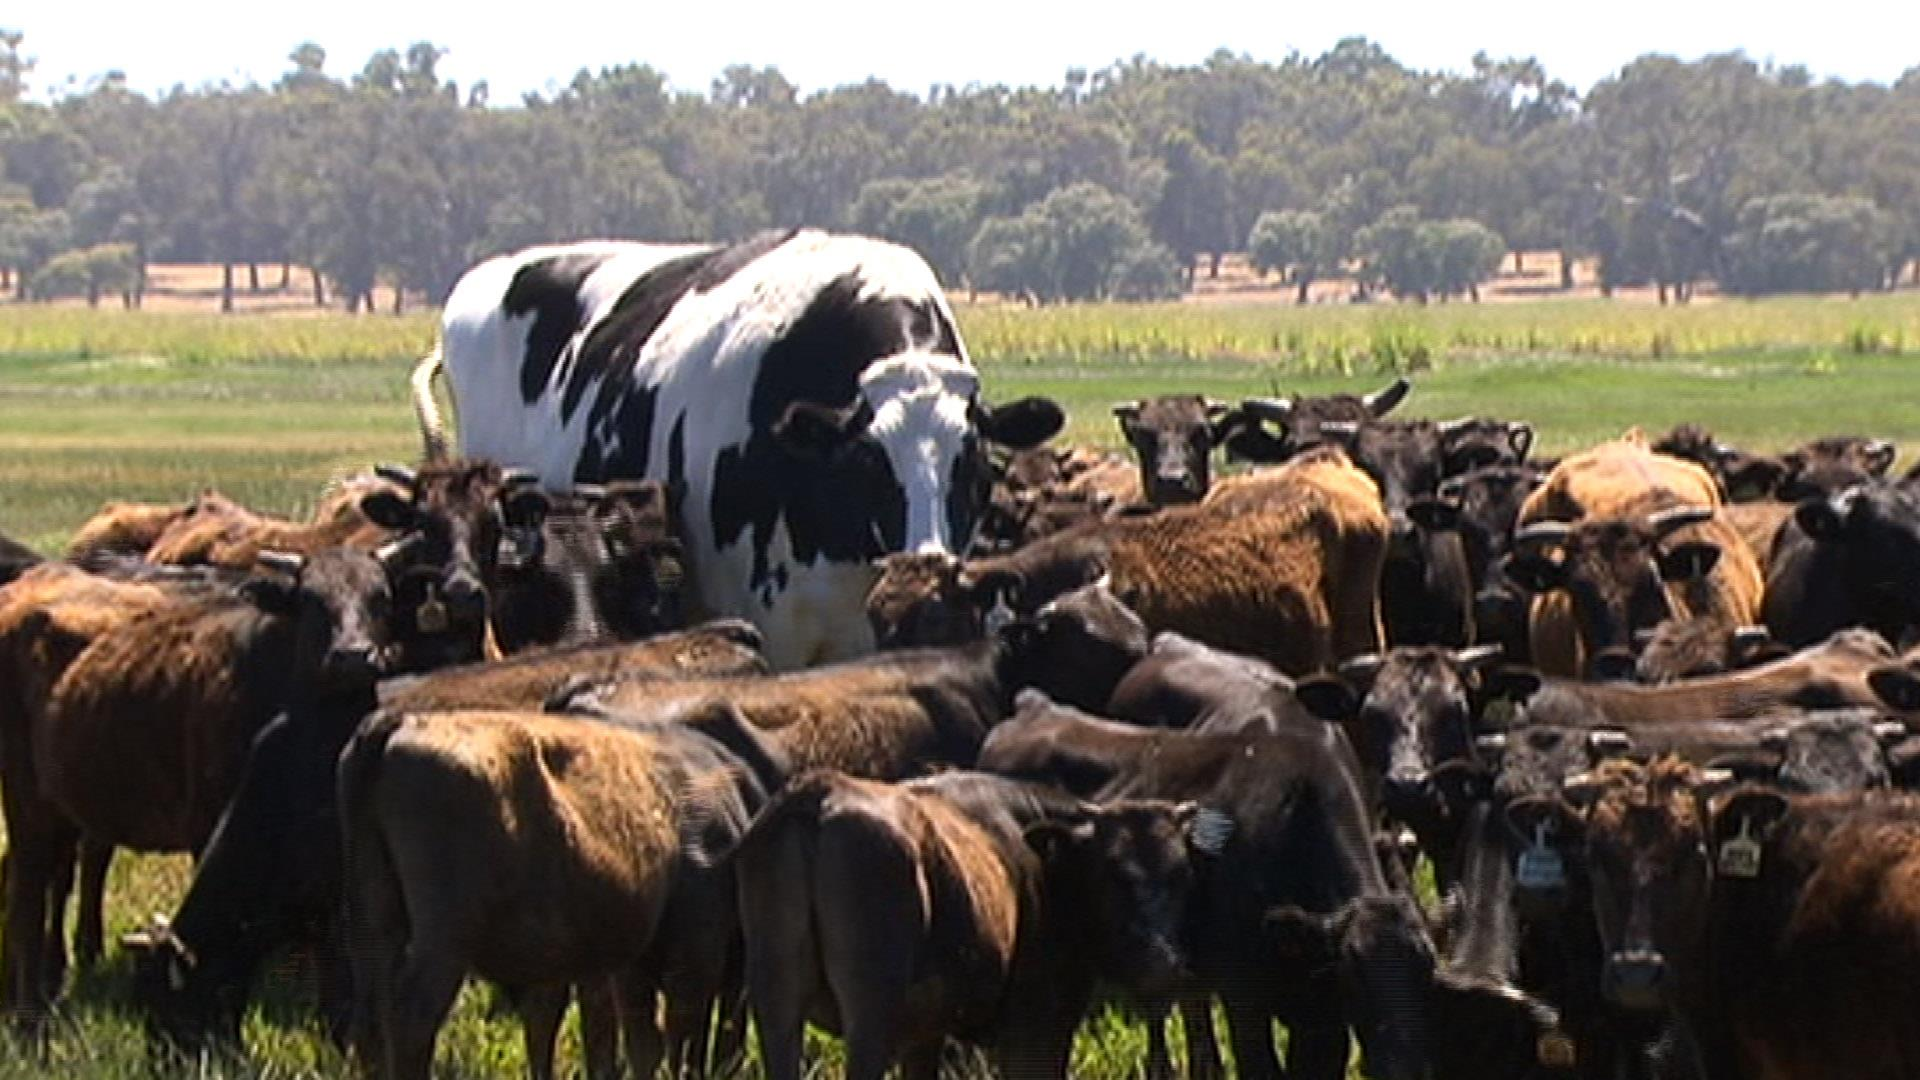 Knickers The Giant Steer Is Believed To Be Australia S Largest Cow